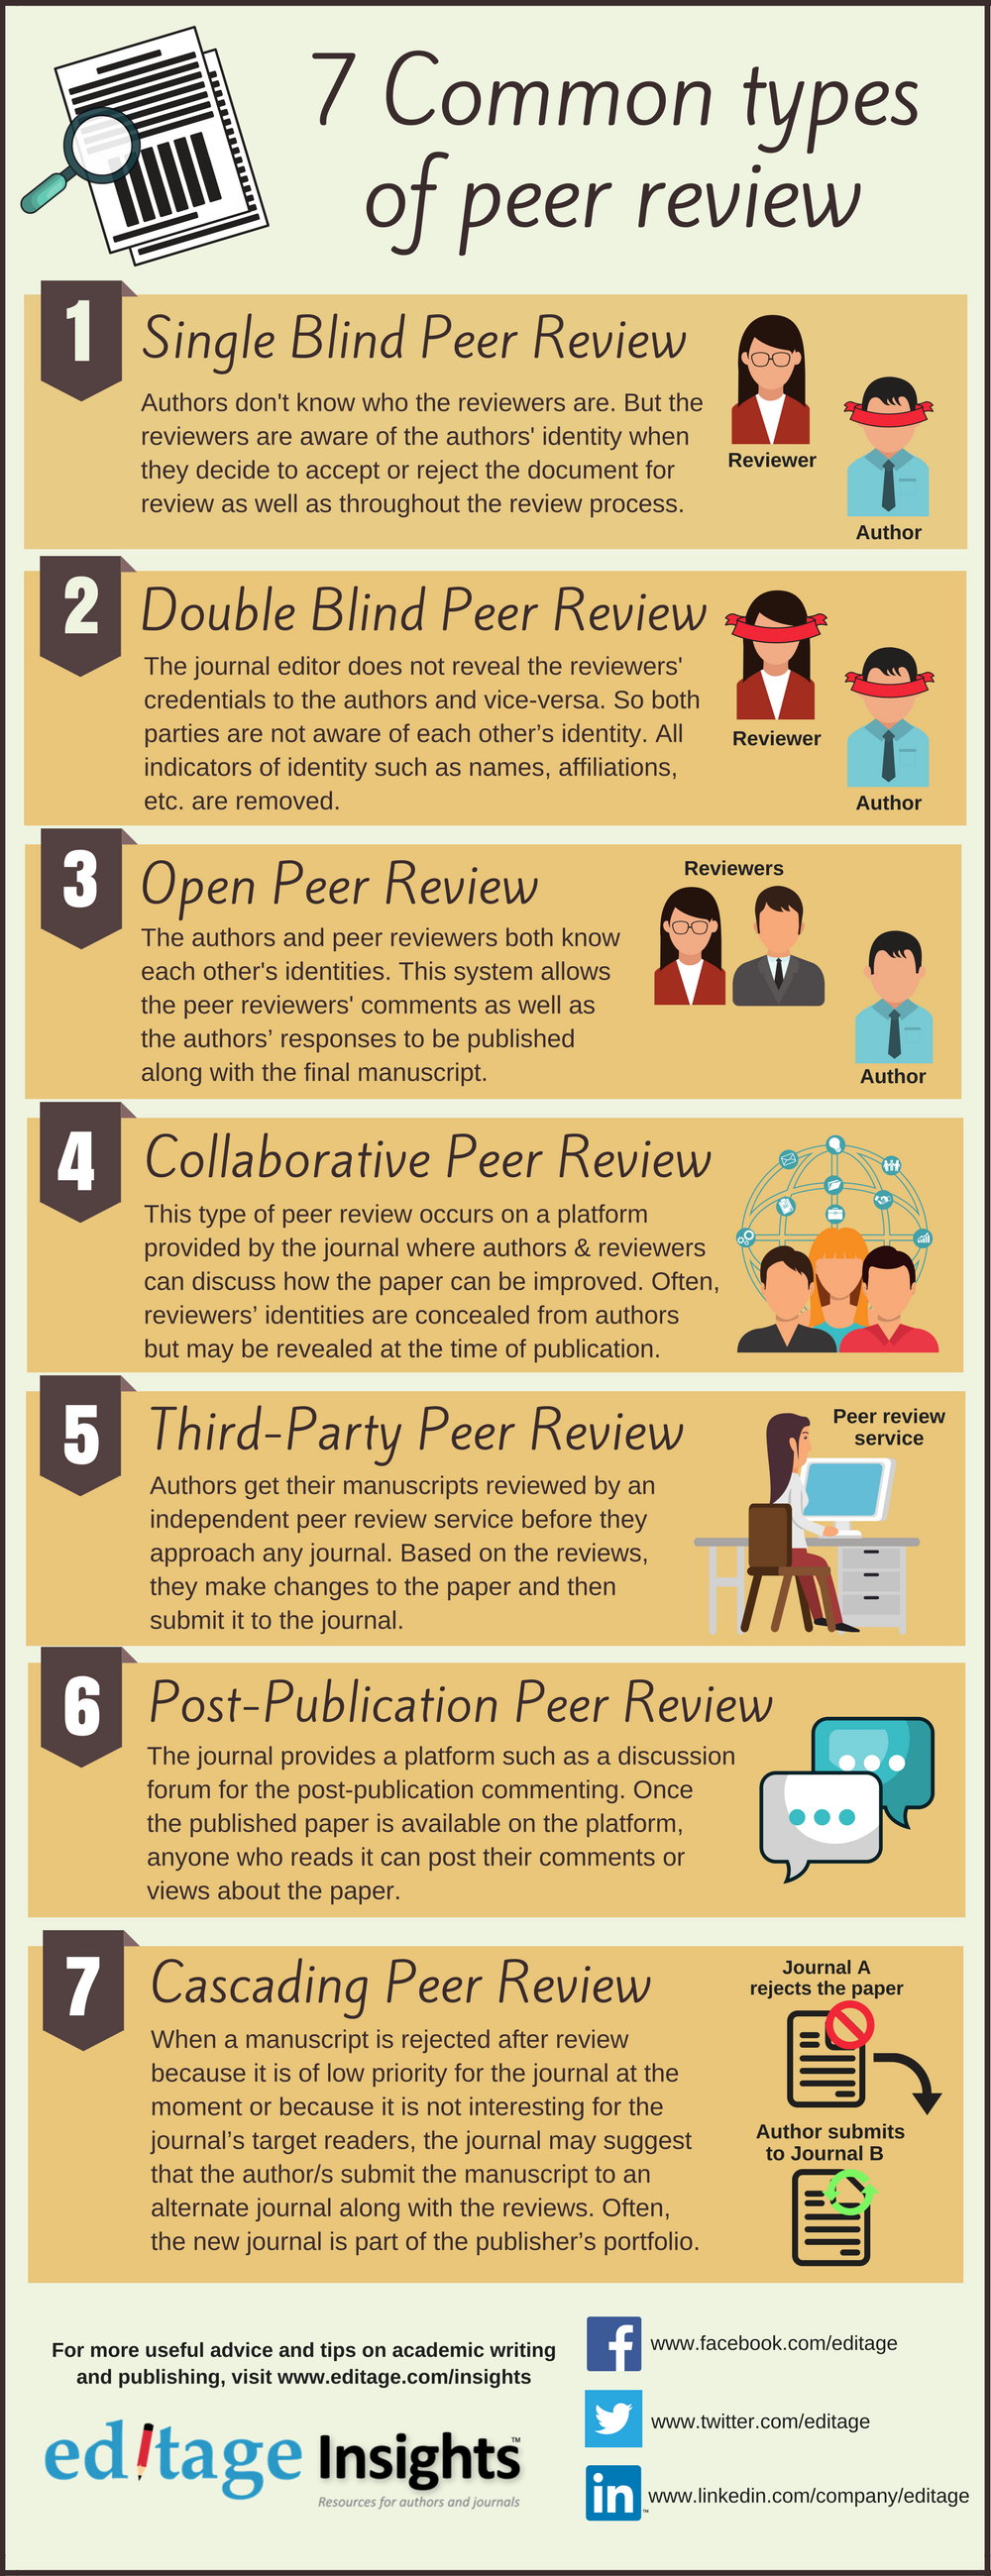 7 common types of academic peer review